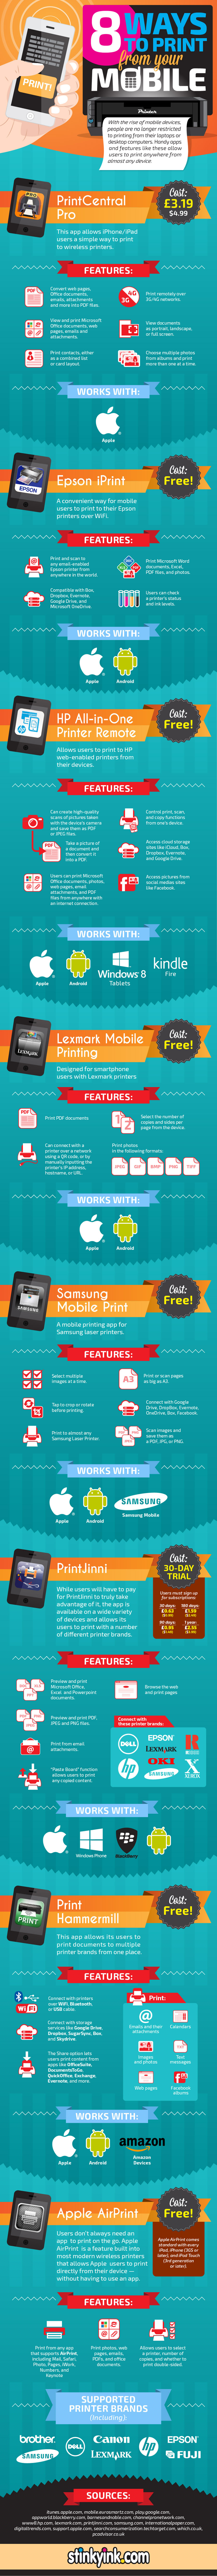 8 Tips To Print From Your Mobile - #infographic